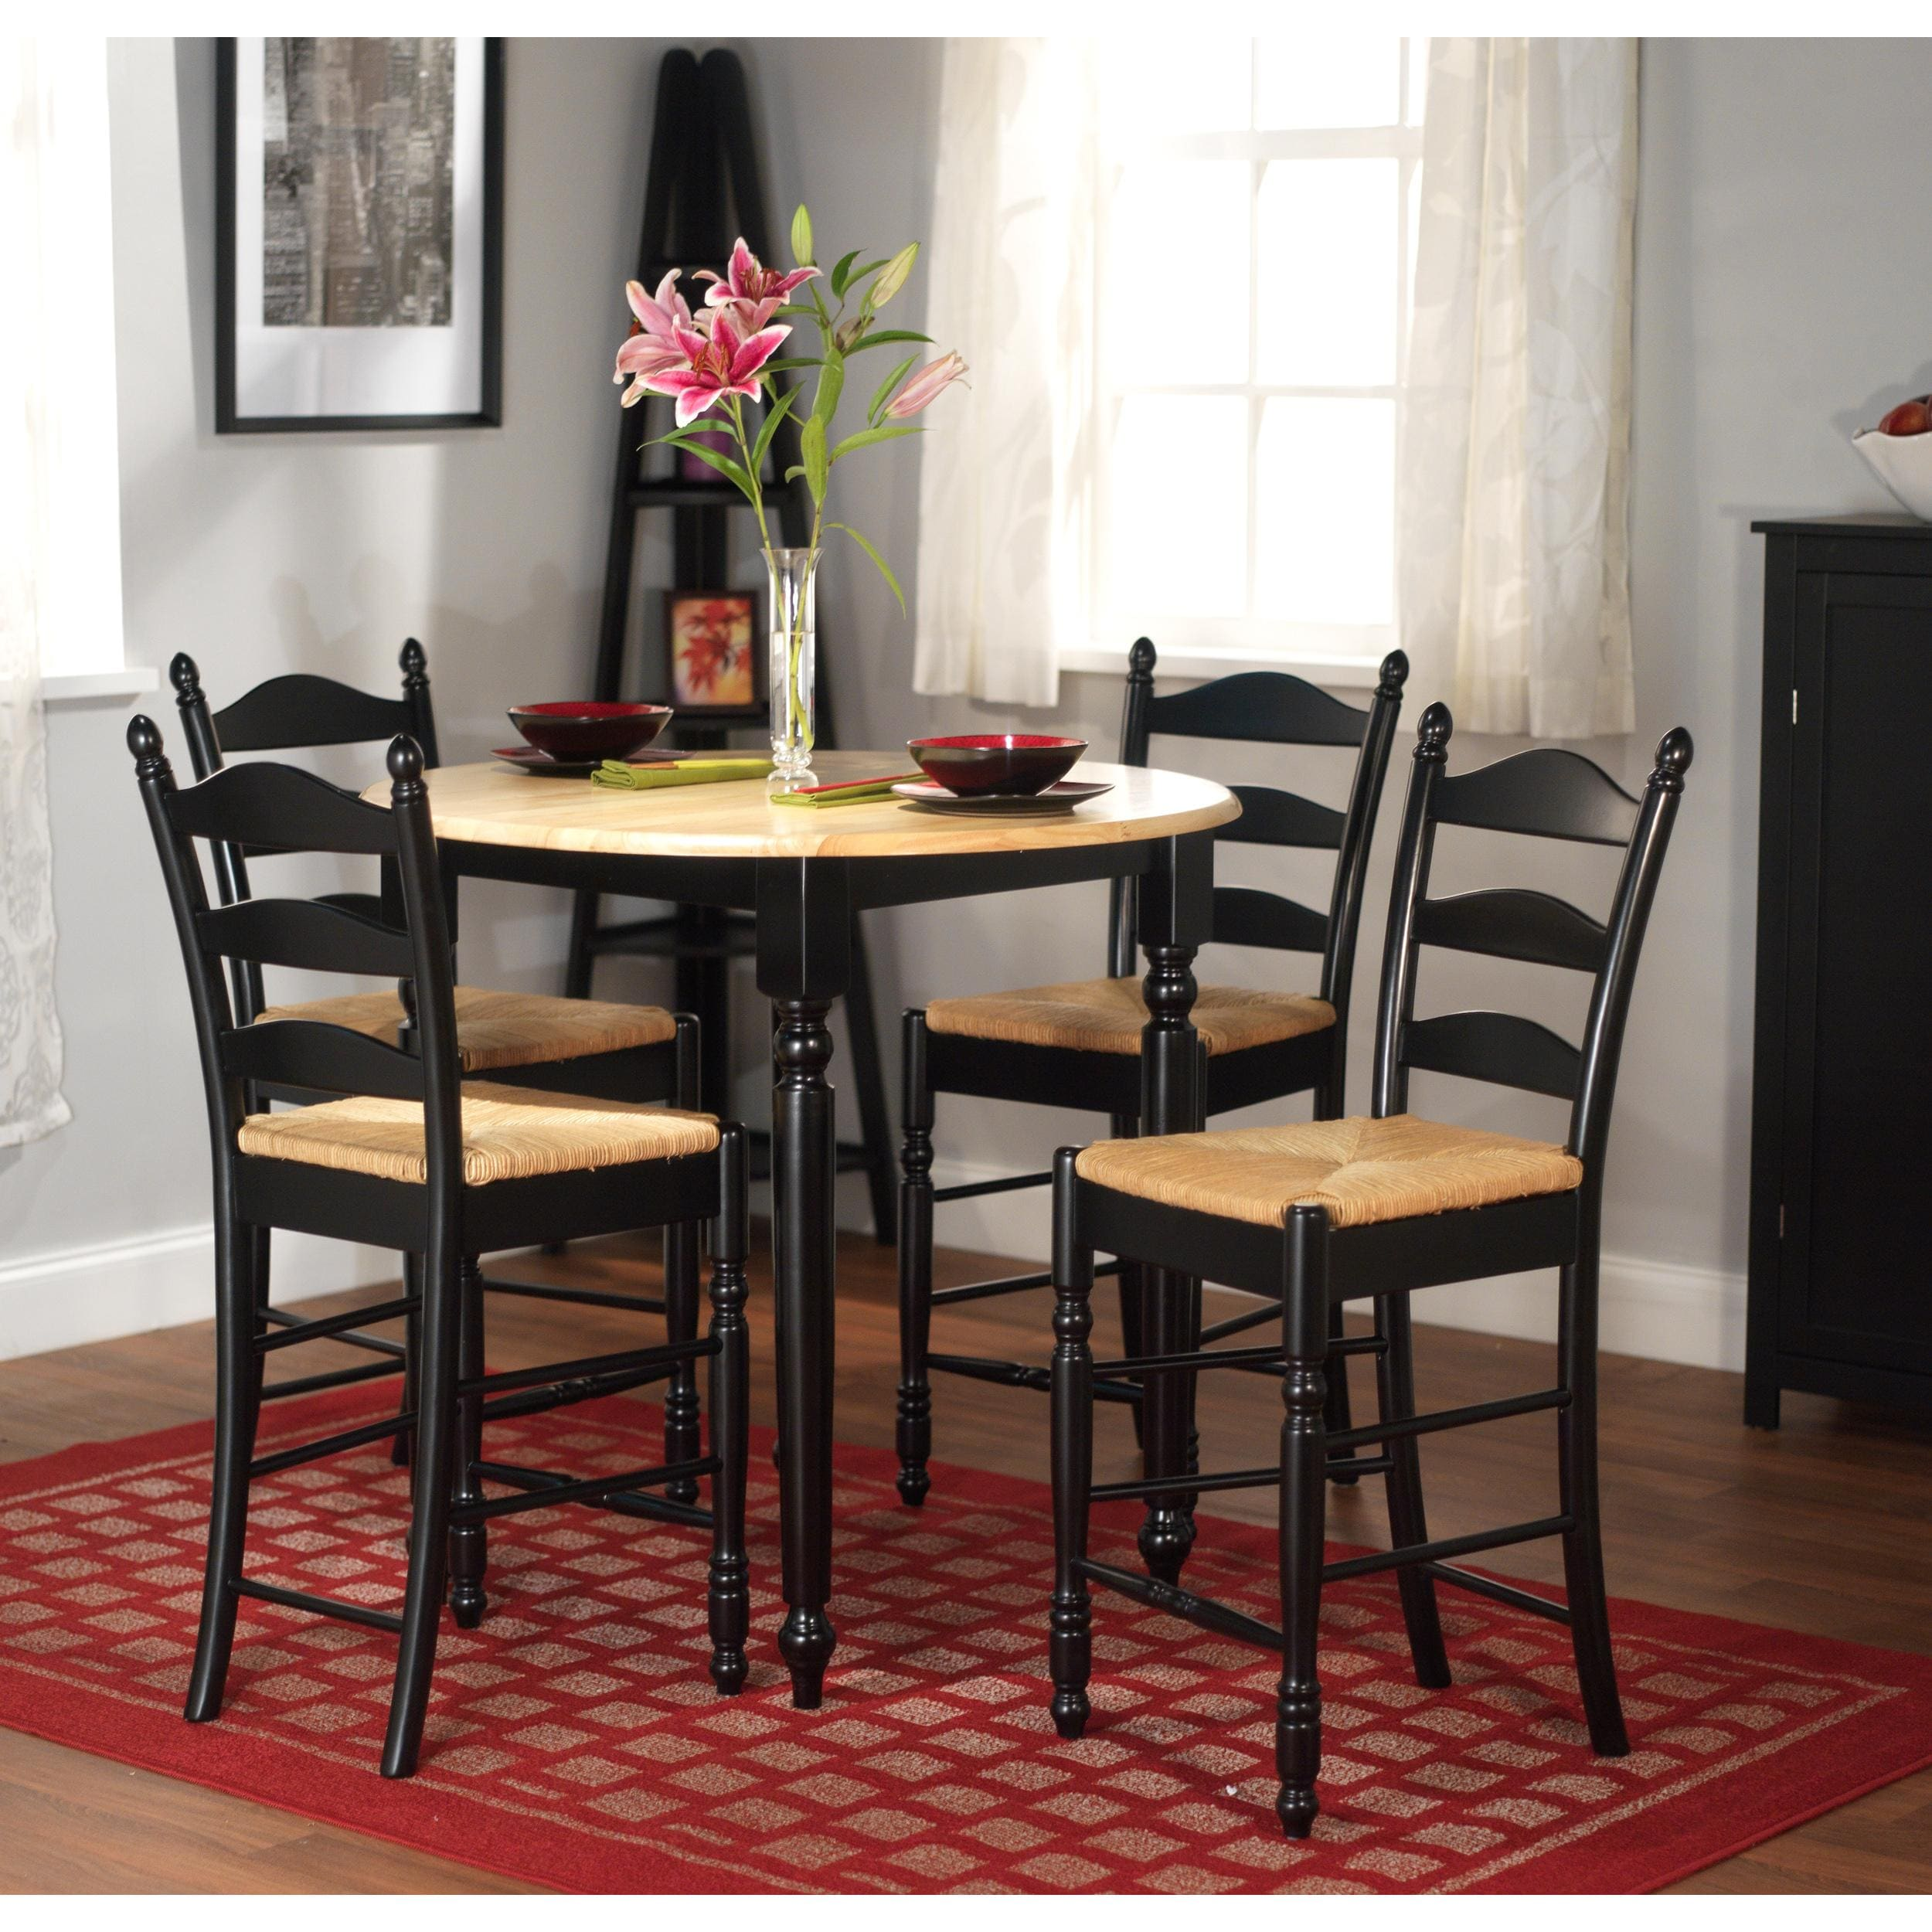 5 Piece Round Dining Set: Simple Living Round Counter Height 5-piece Dining Set